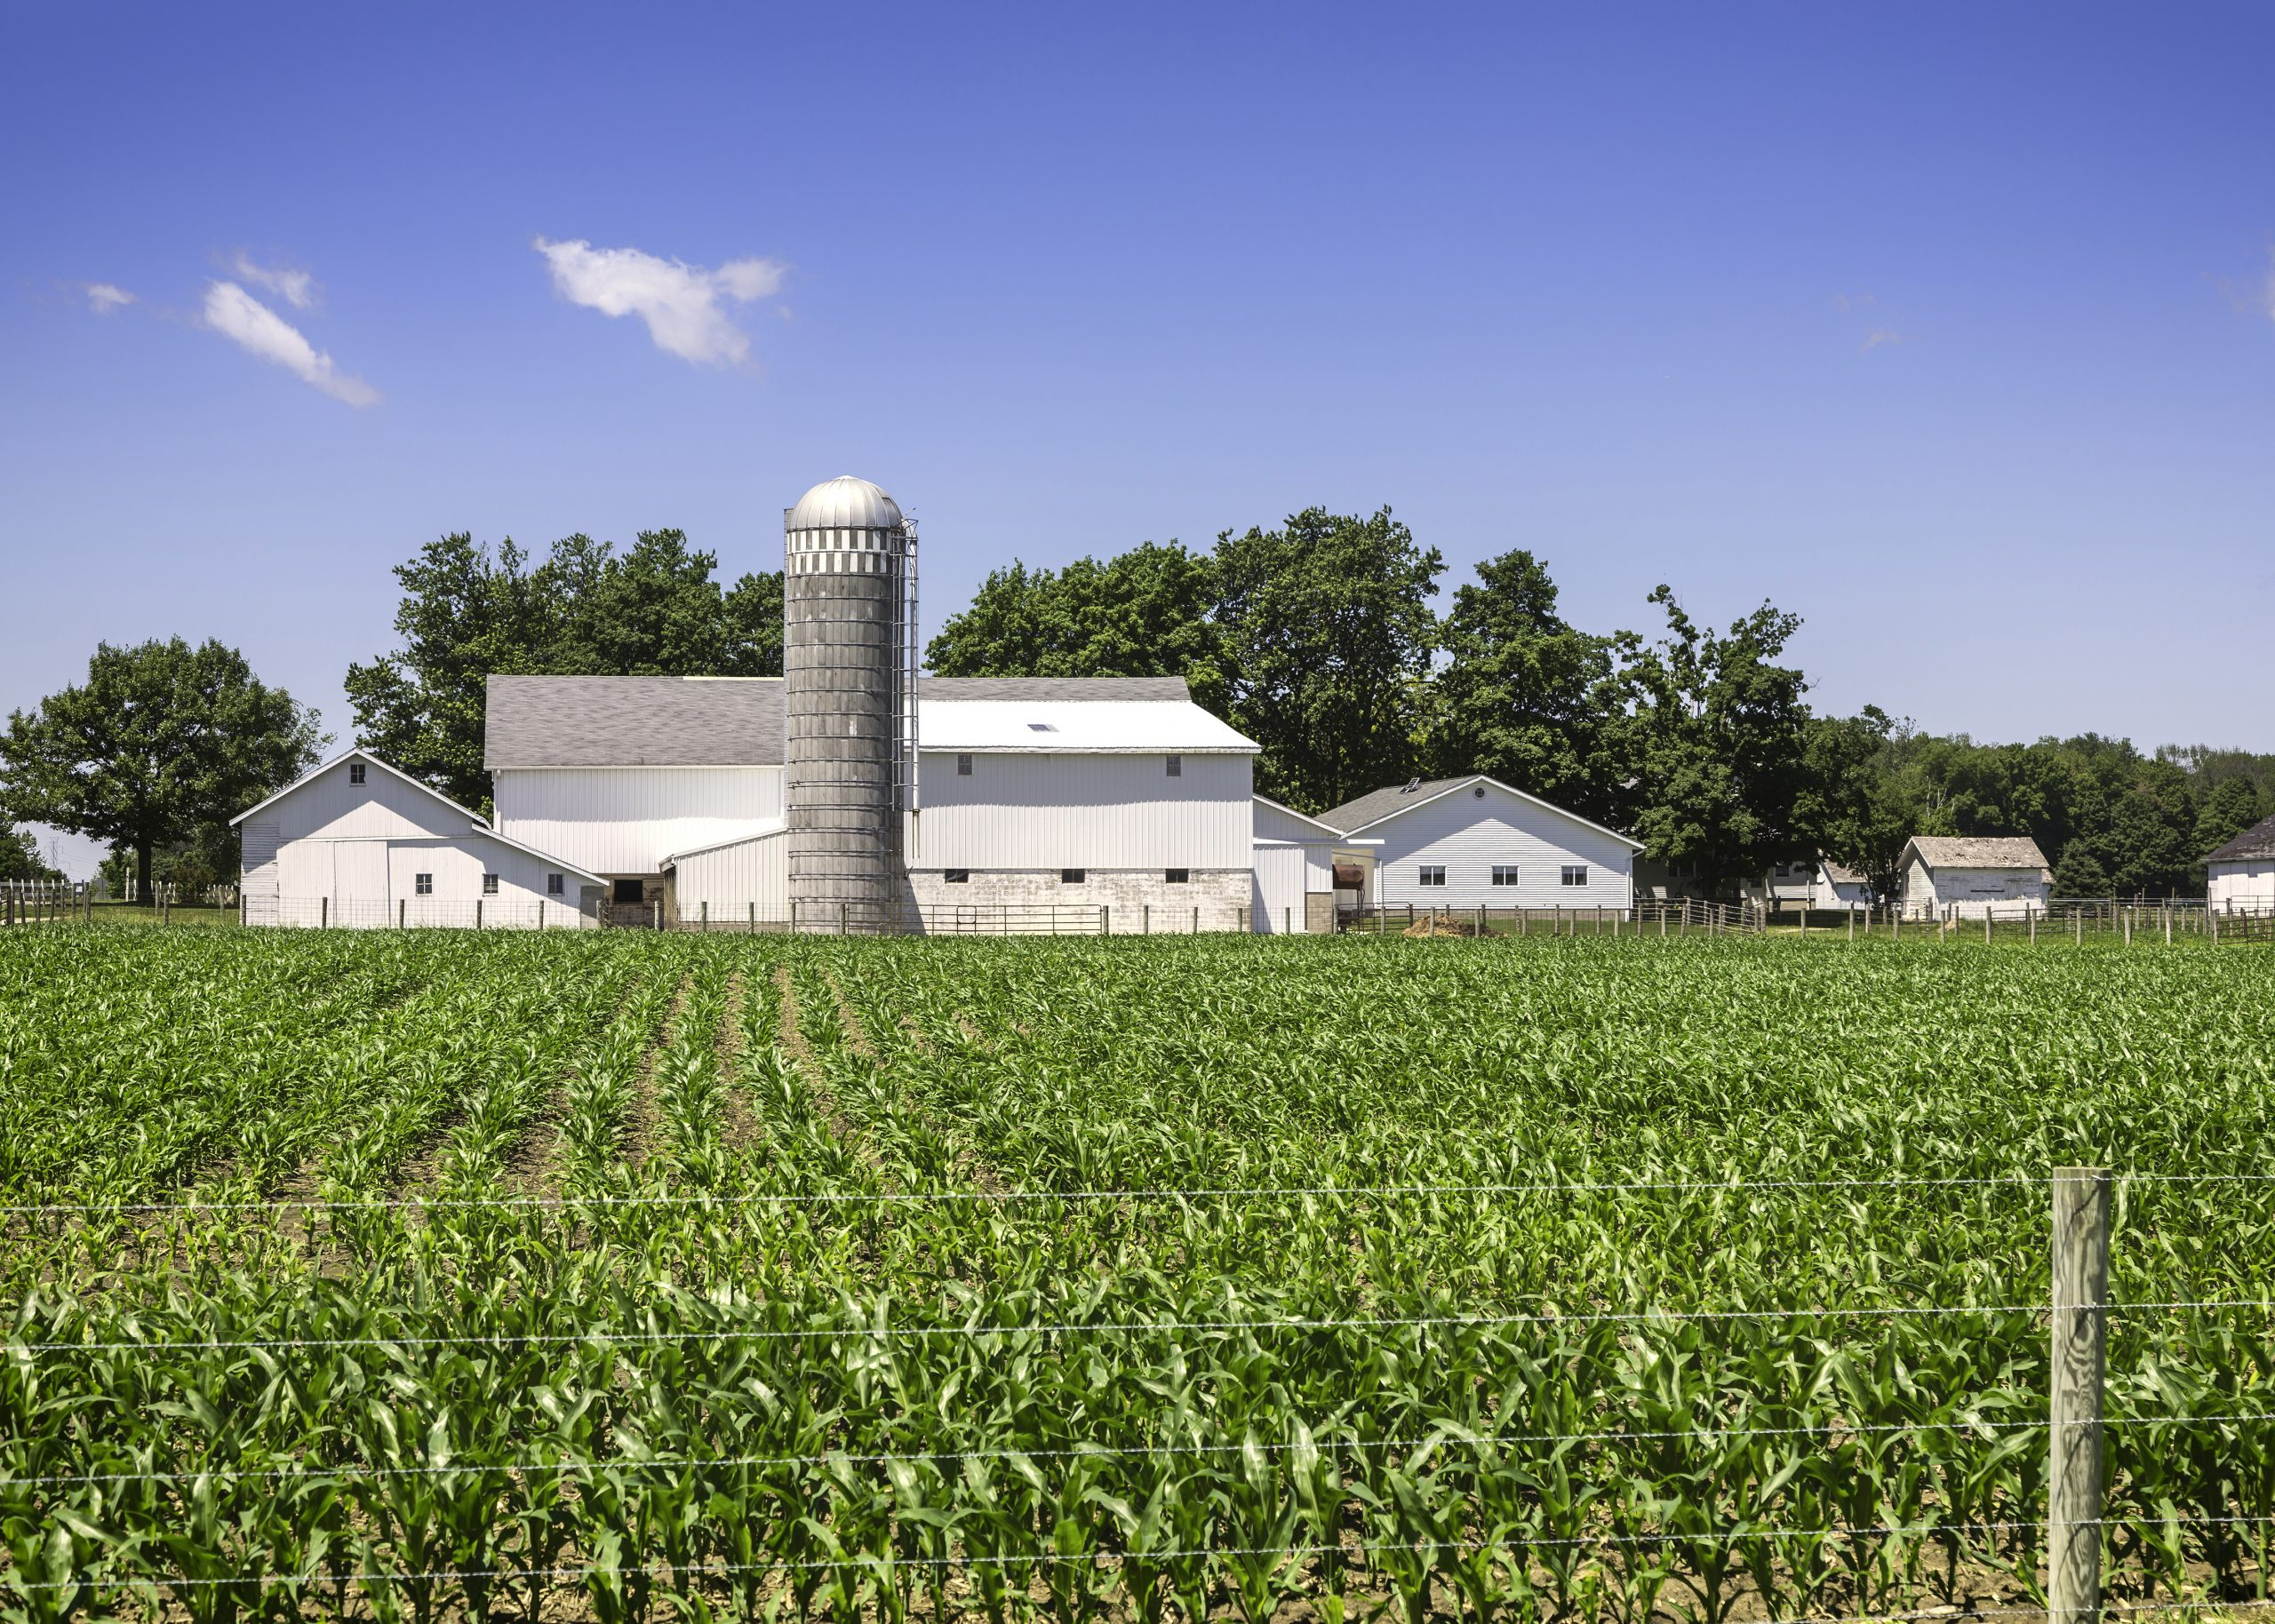 Image of a white barn behind a field of immature corn. Link takes you to the Bank of Versailles Agricultural Loans page.